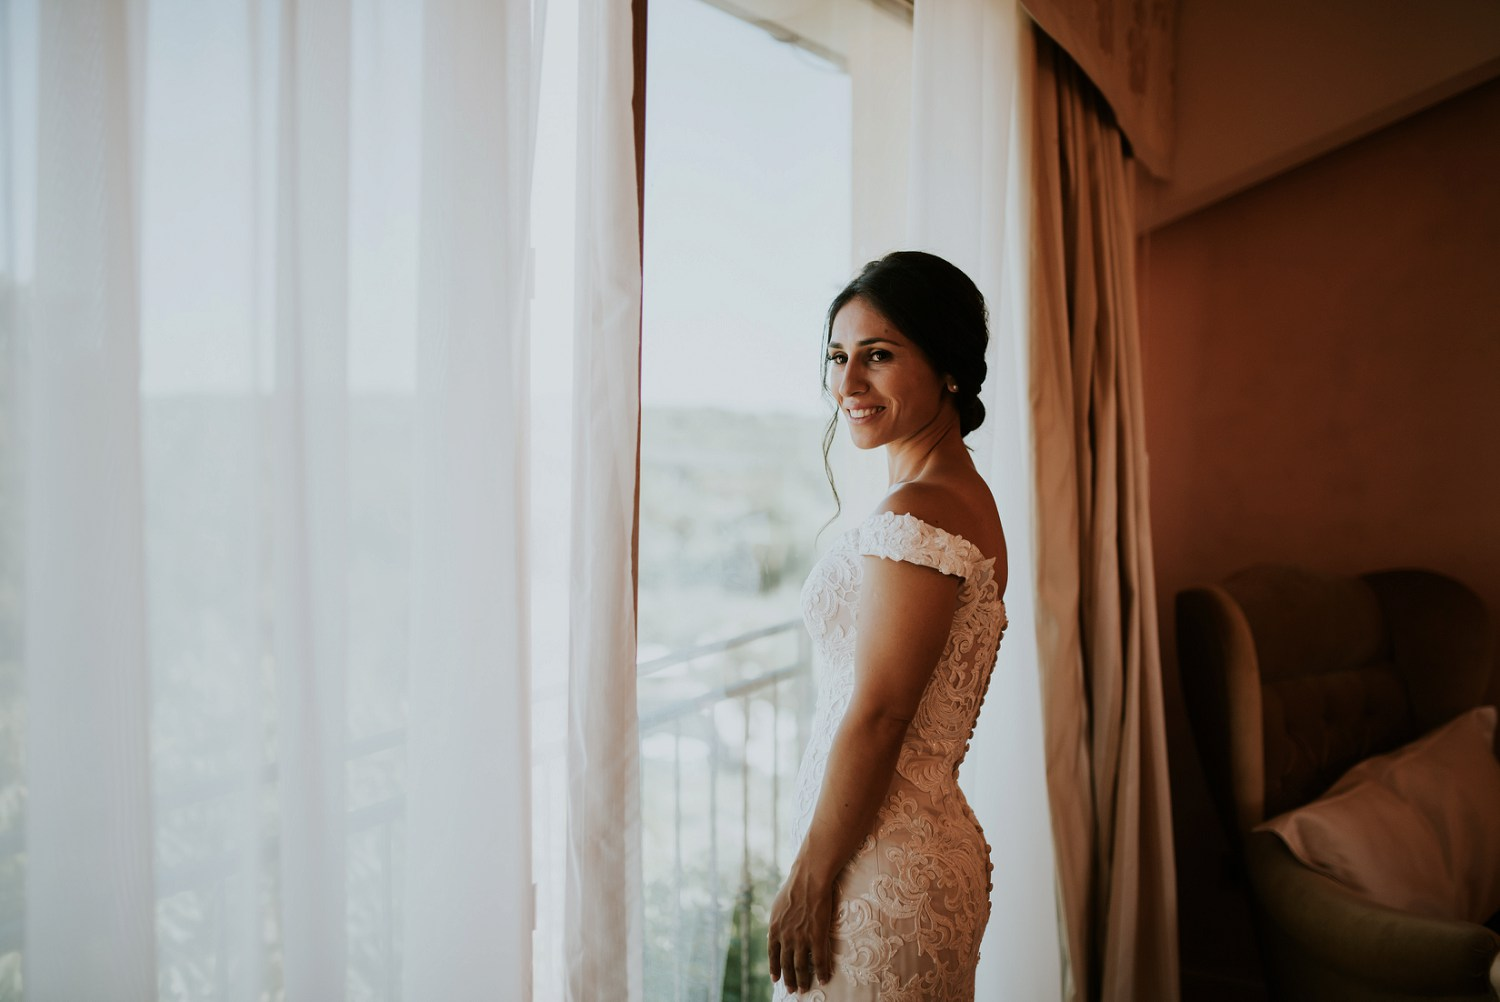 croatia-wedding-photographer-istria-sanrocco_0017.jpg